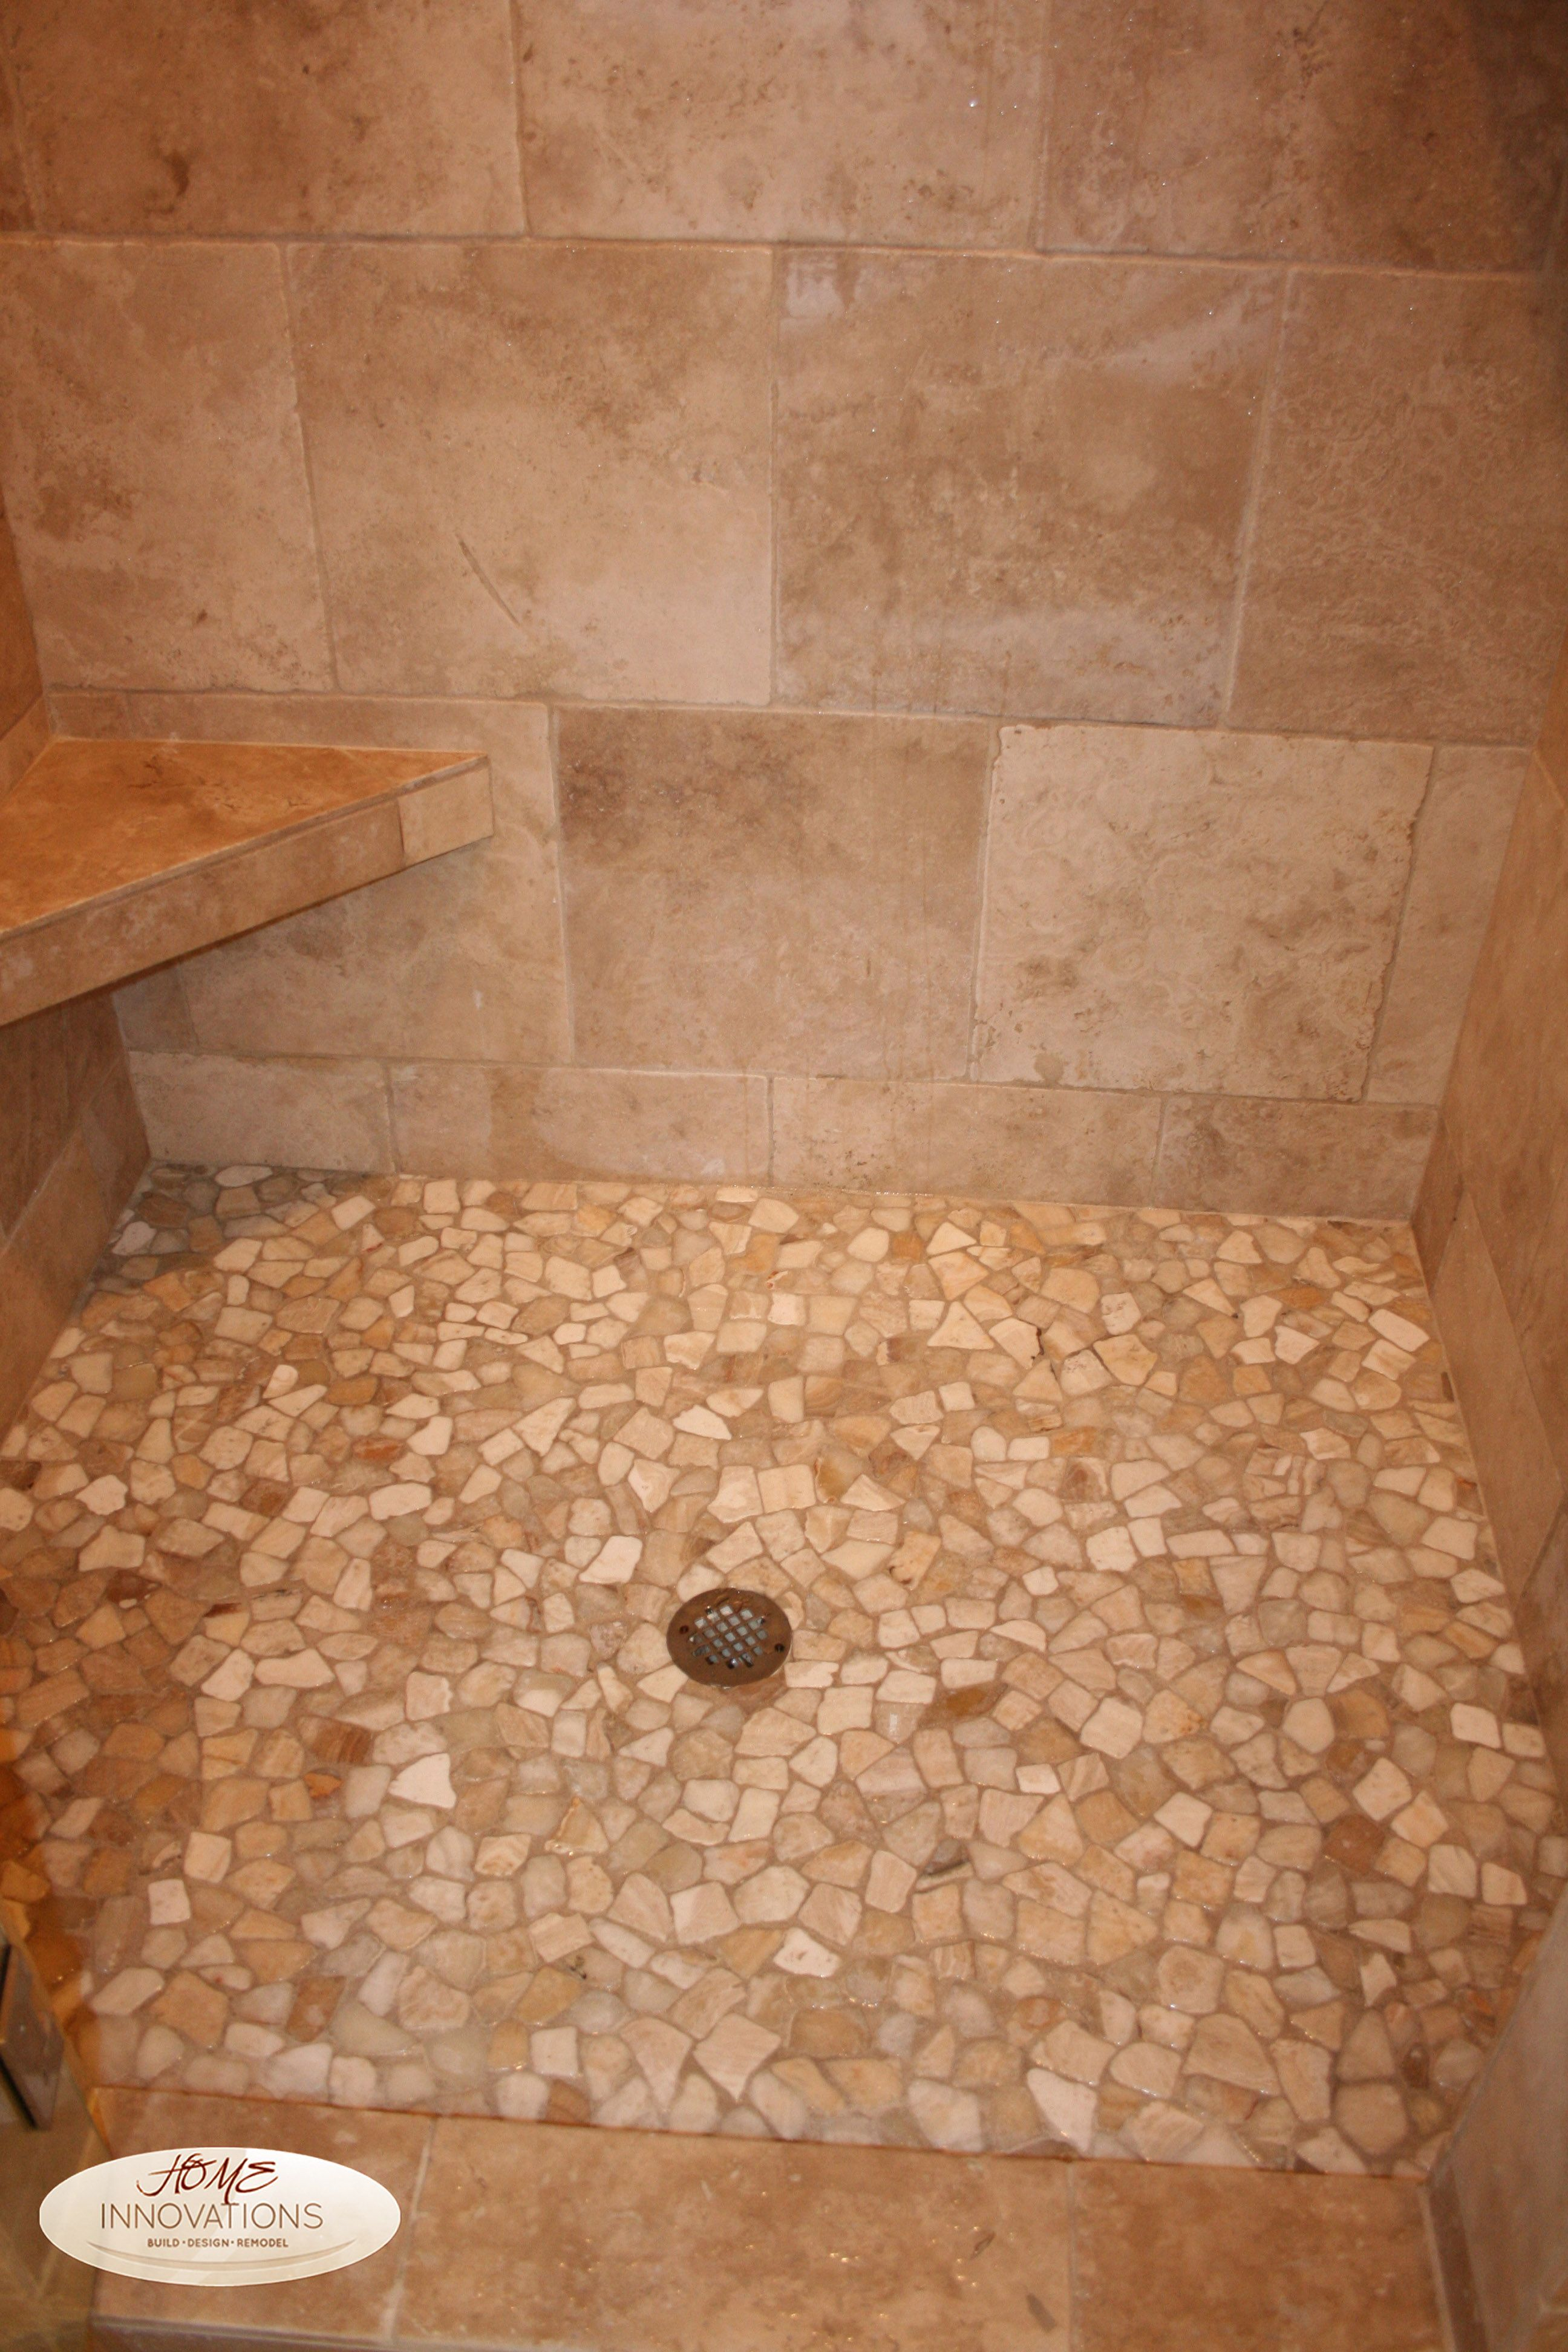 sandstone mosaic tile tile shower